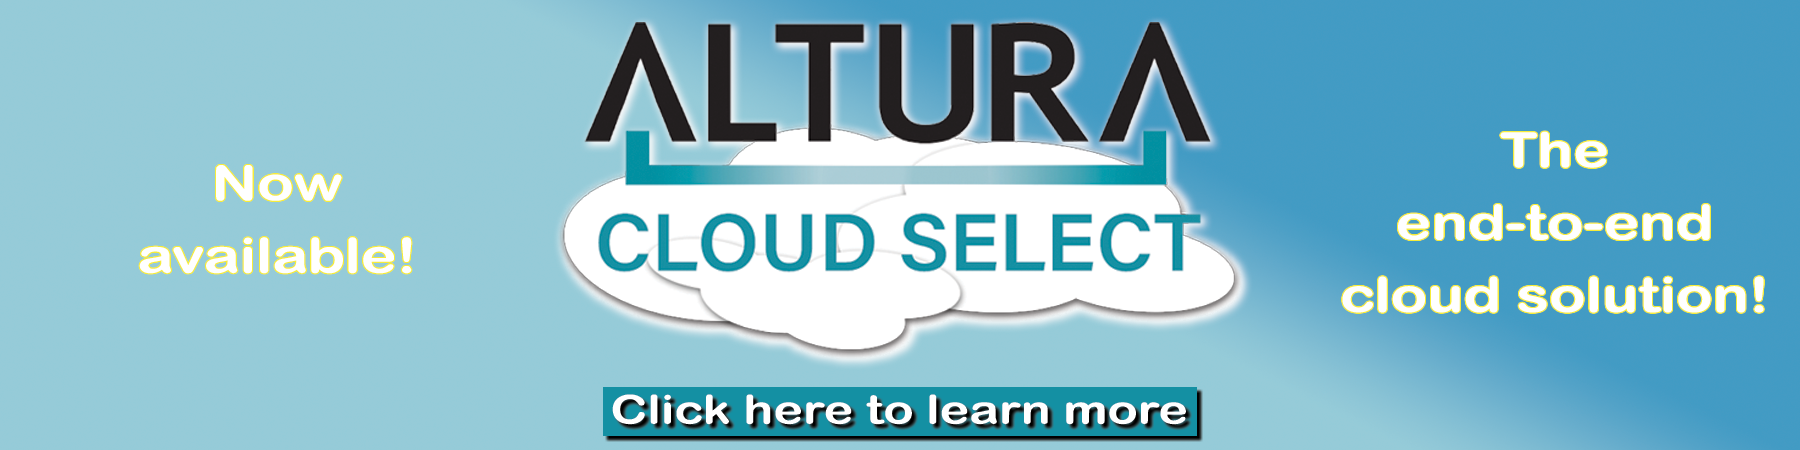 Altura Cloud Select